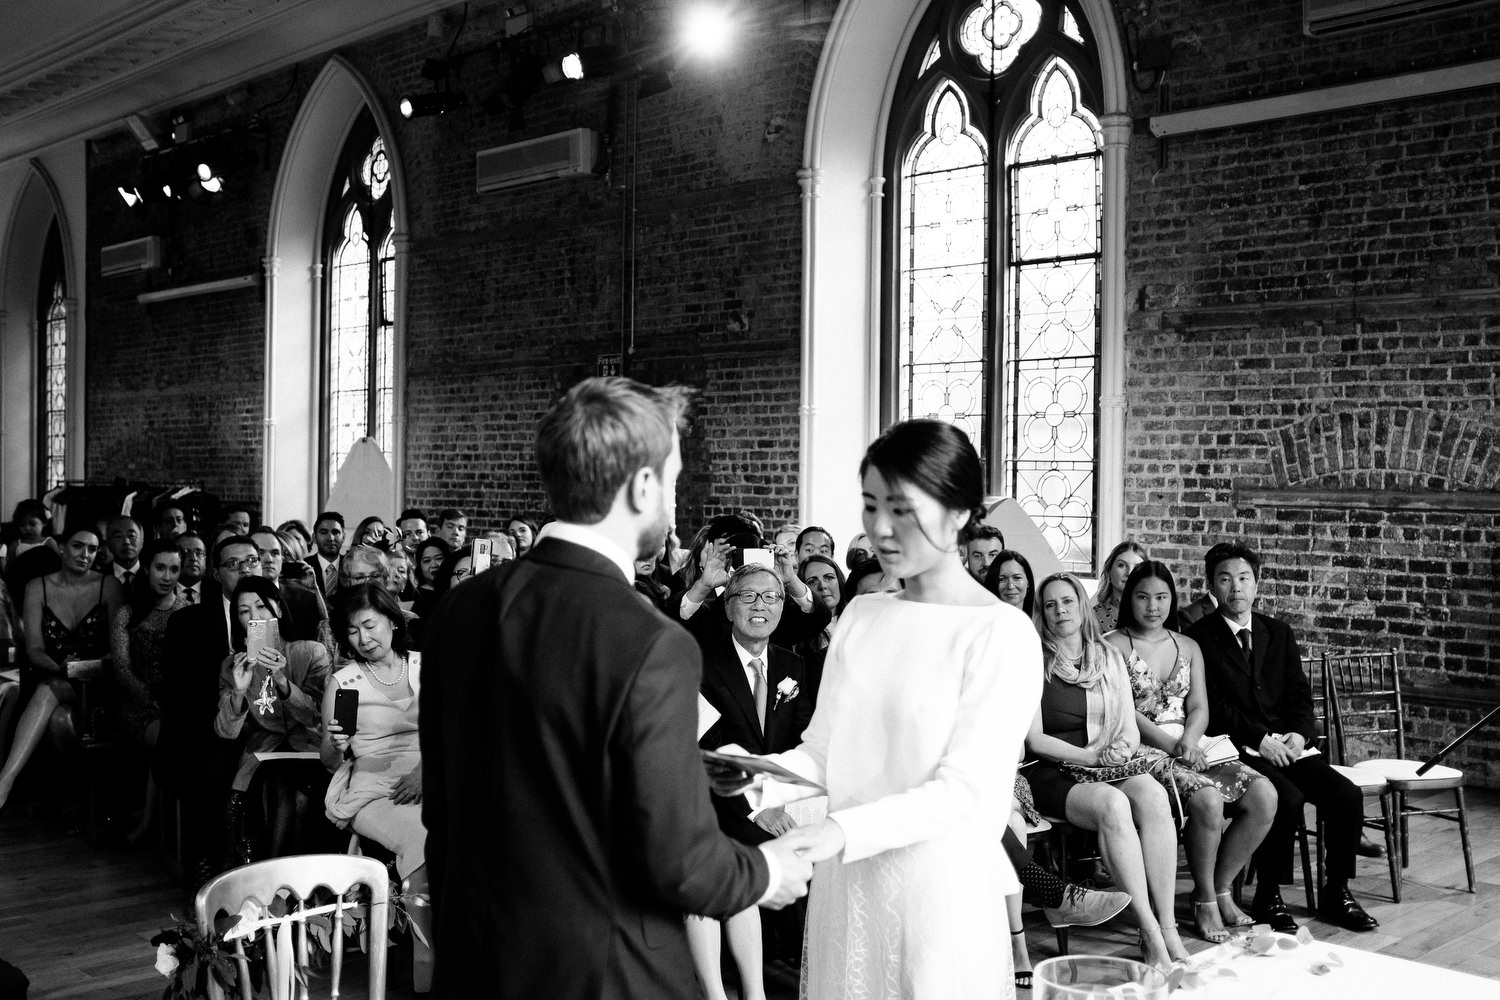 dmp0258_dublin_alley_photography_david_mcclelland_ceremony_humanist_documentary_theatre_smock_wedding_photographer